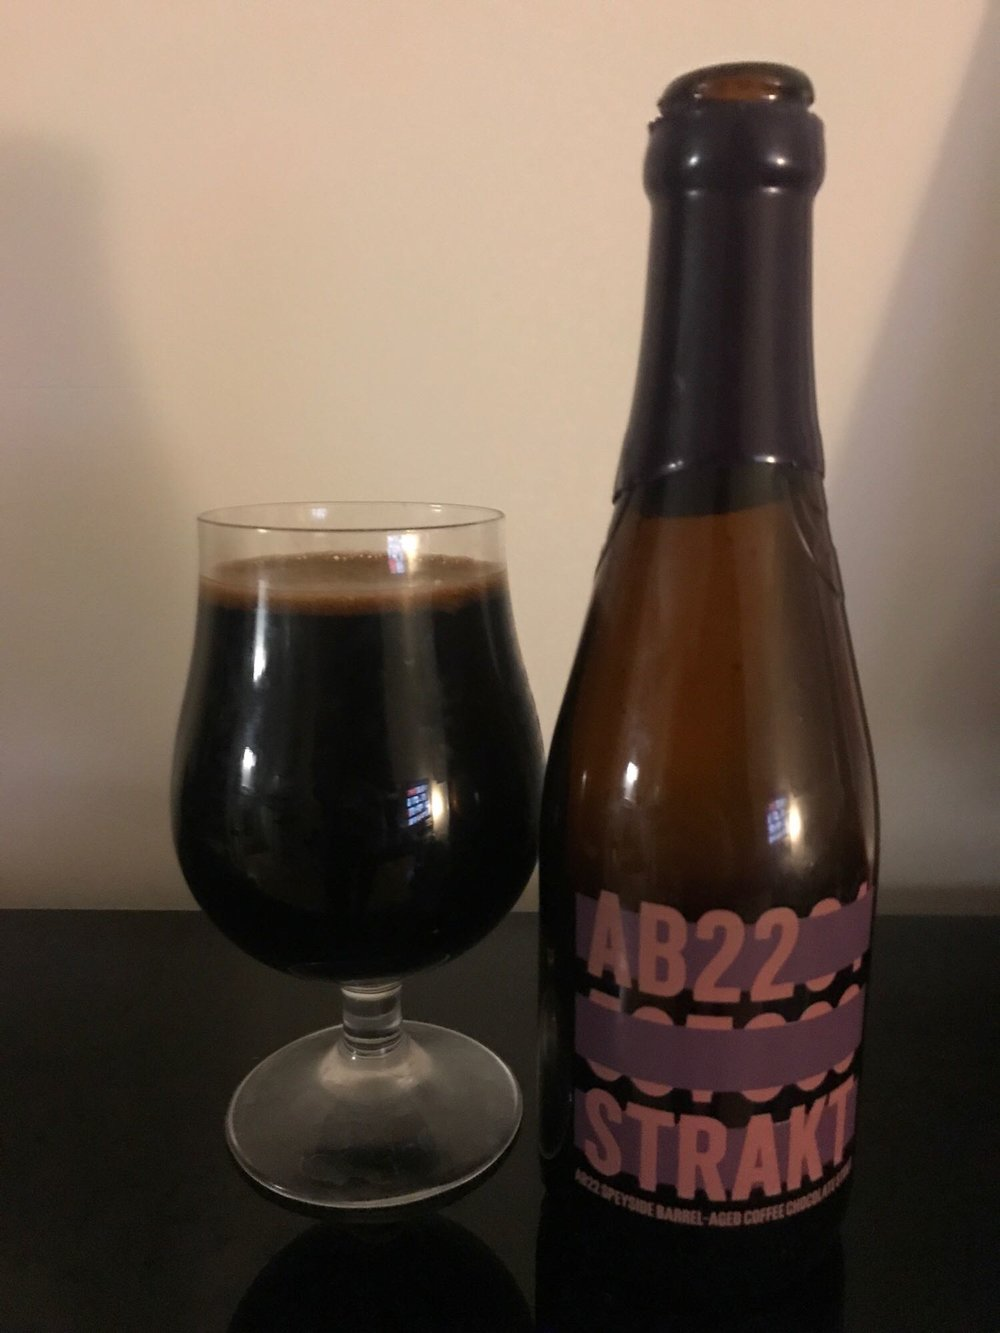 Abstrakt AB:22 - Imperial Stout 12.5% // BrewDog  - Another big boozey bastard. This time from BrewDog. AB:22 was actually released at the start of 2017 and had lingered at the back of the beer cupboard for the best part of a year before I saw fit to crack it open. An imperial stout made with cacao and coffee and aged for two years in Speyside whisky casks.The official description is a tiiiny bit over the top in describing the flavours: